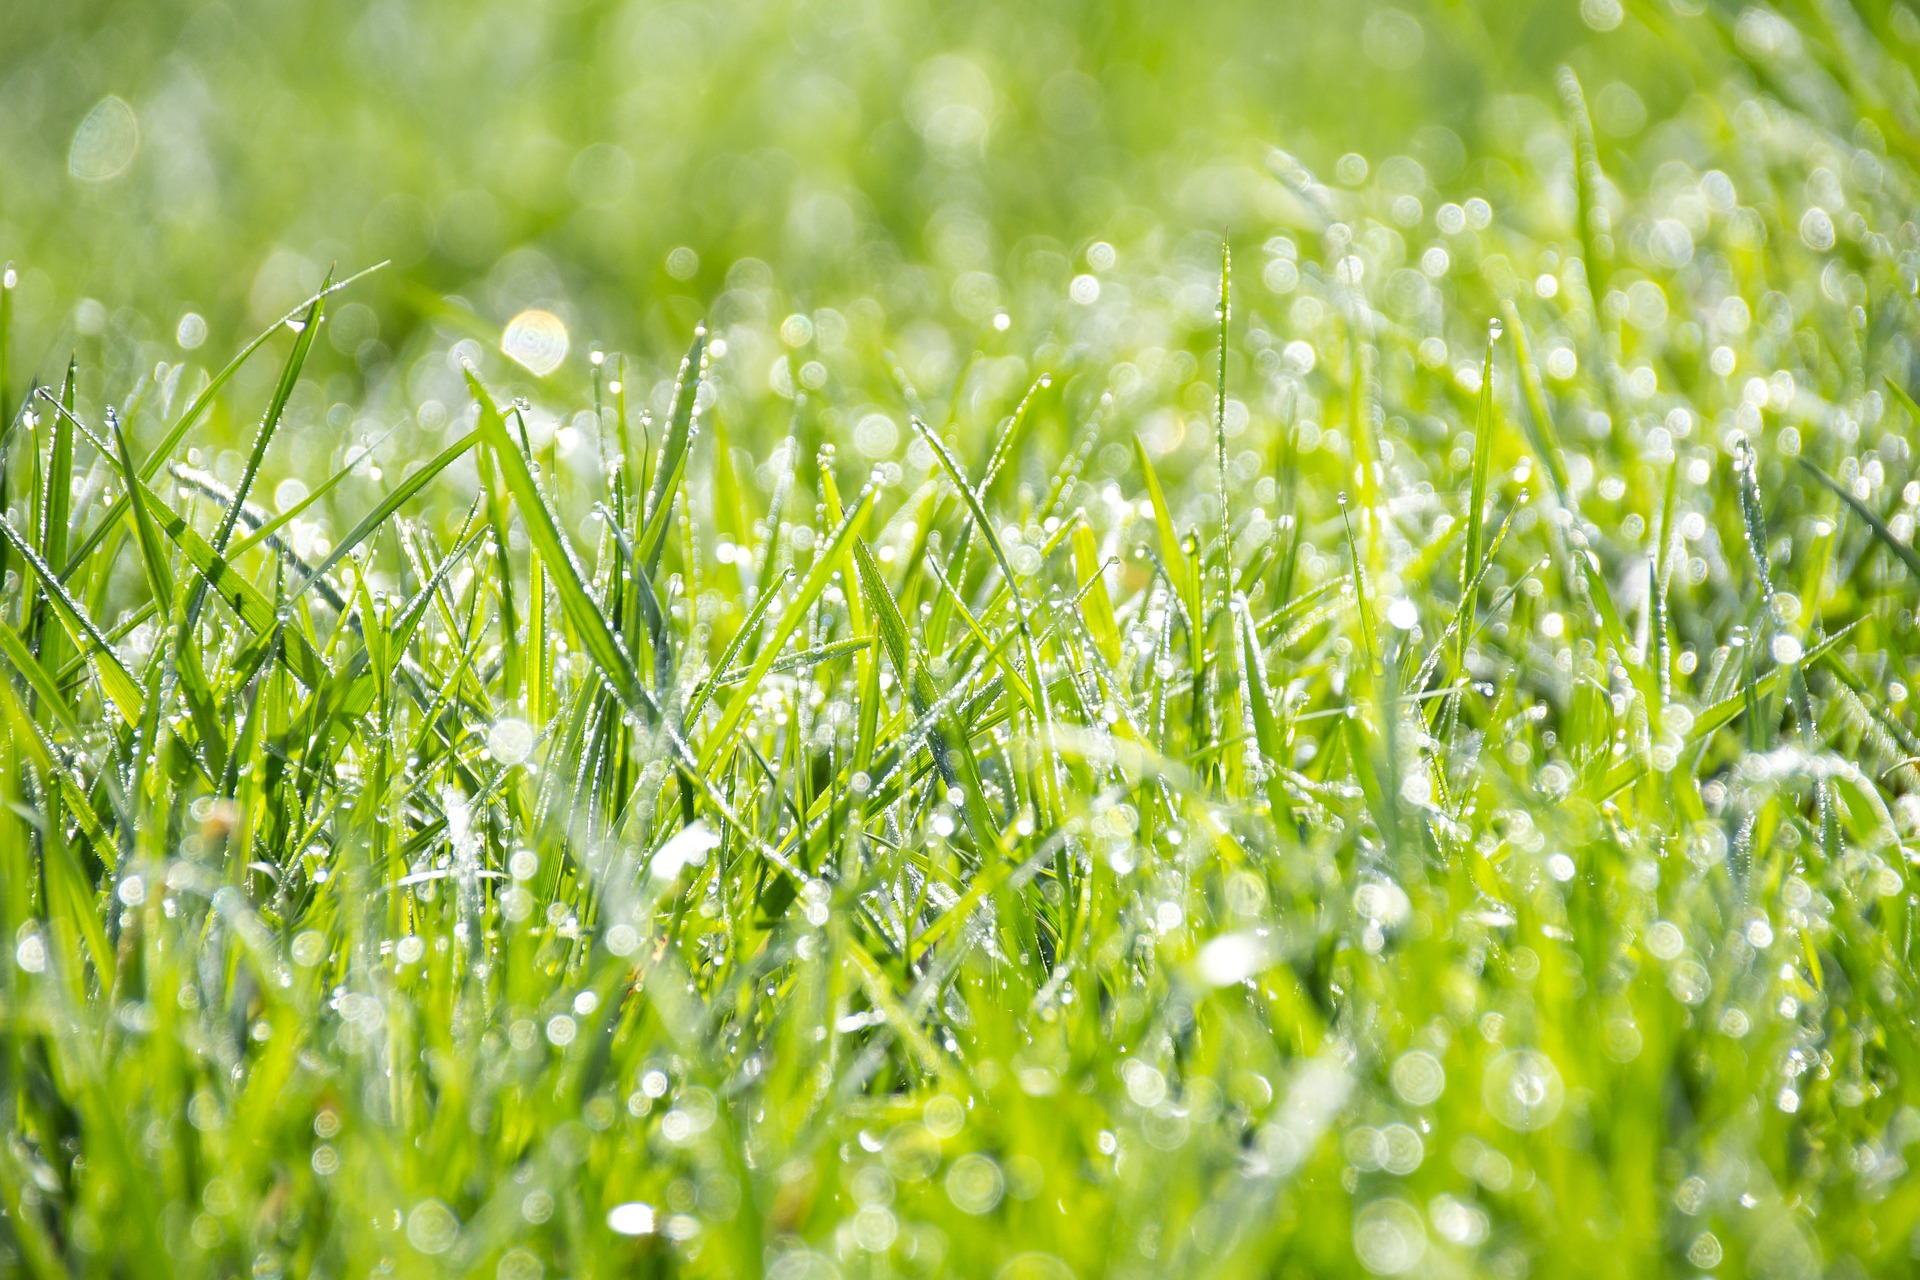 How Often Should I Water A Newly Overseeded Lawn?